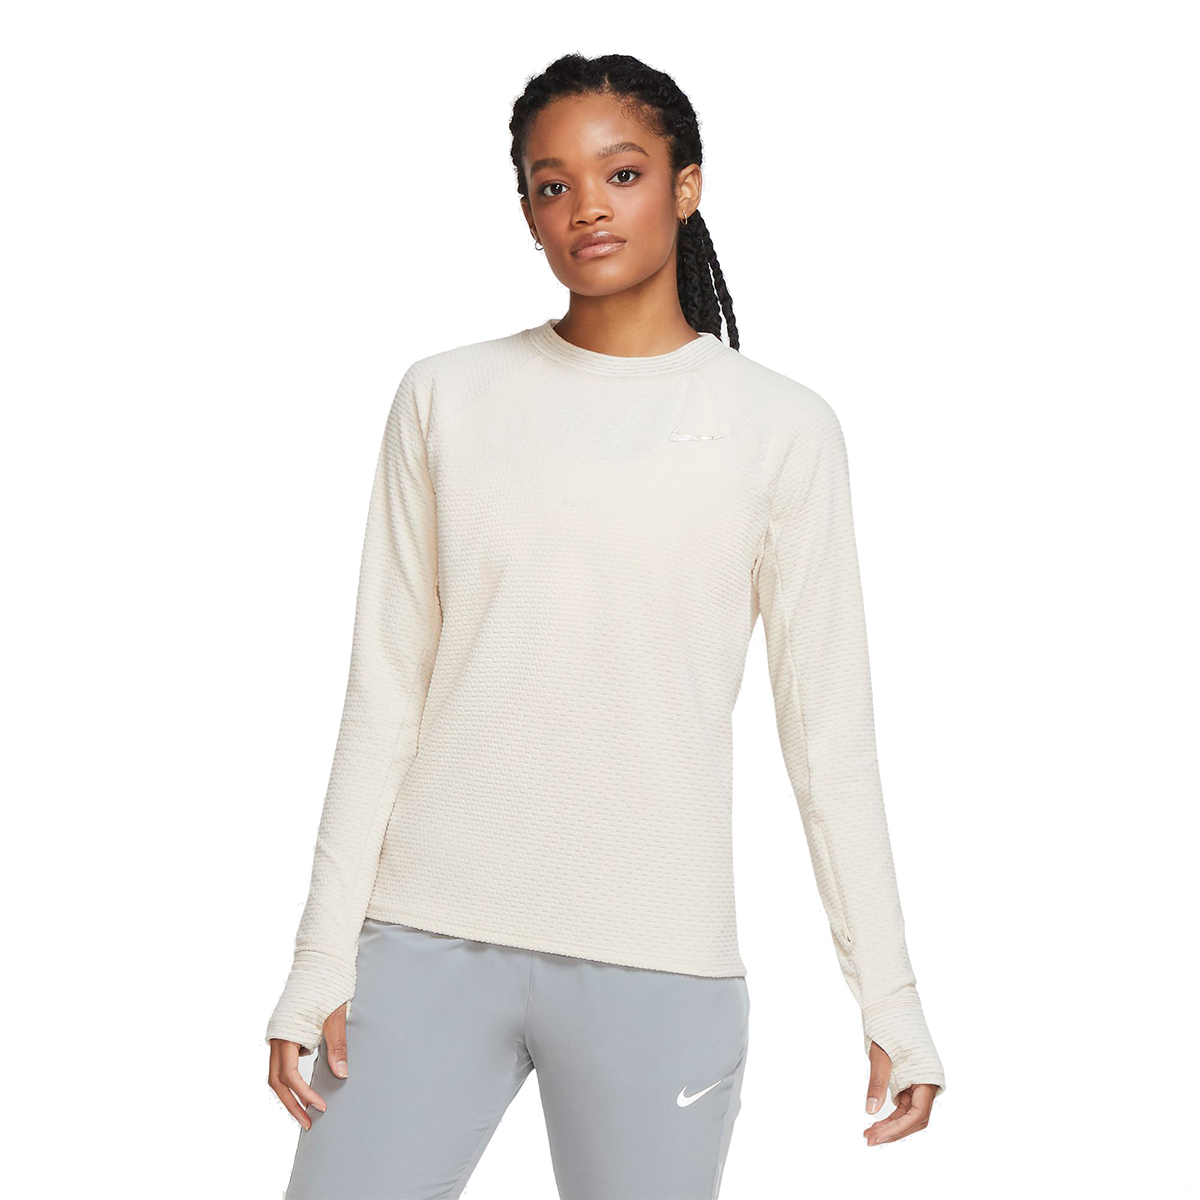 Women's Nike Sphere Crew Long Sleeve Shirt - Color: Oatmeal/Heather - Size: XS, Oatmeal/Heather, large, image 1